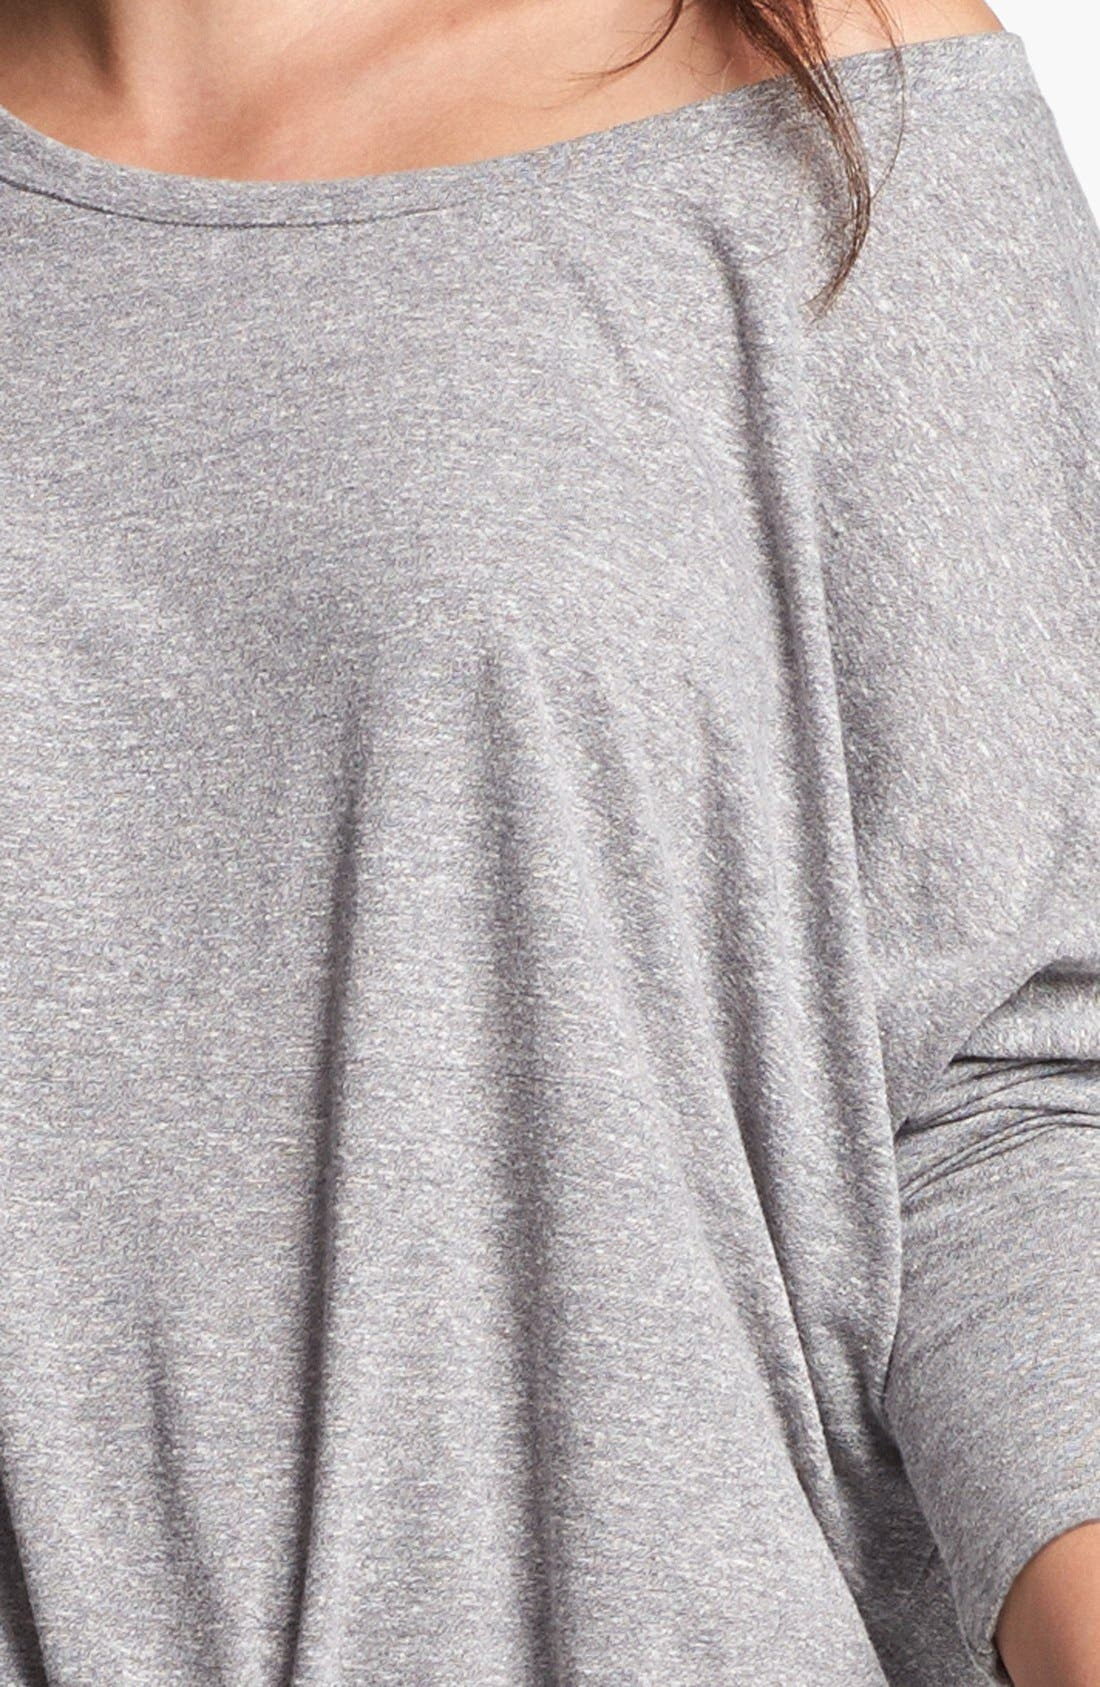 Heather Knit Slouchy Tee,                             Alternate thumbnail 3, color,                             020